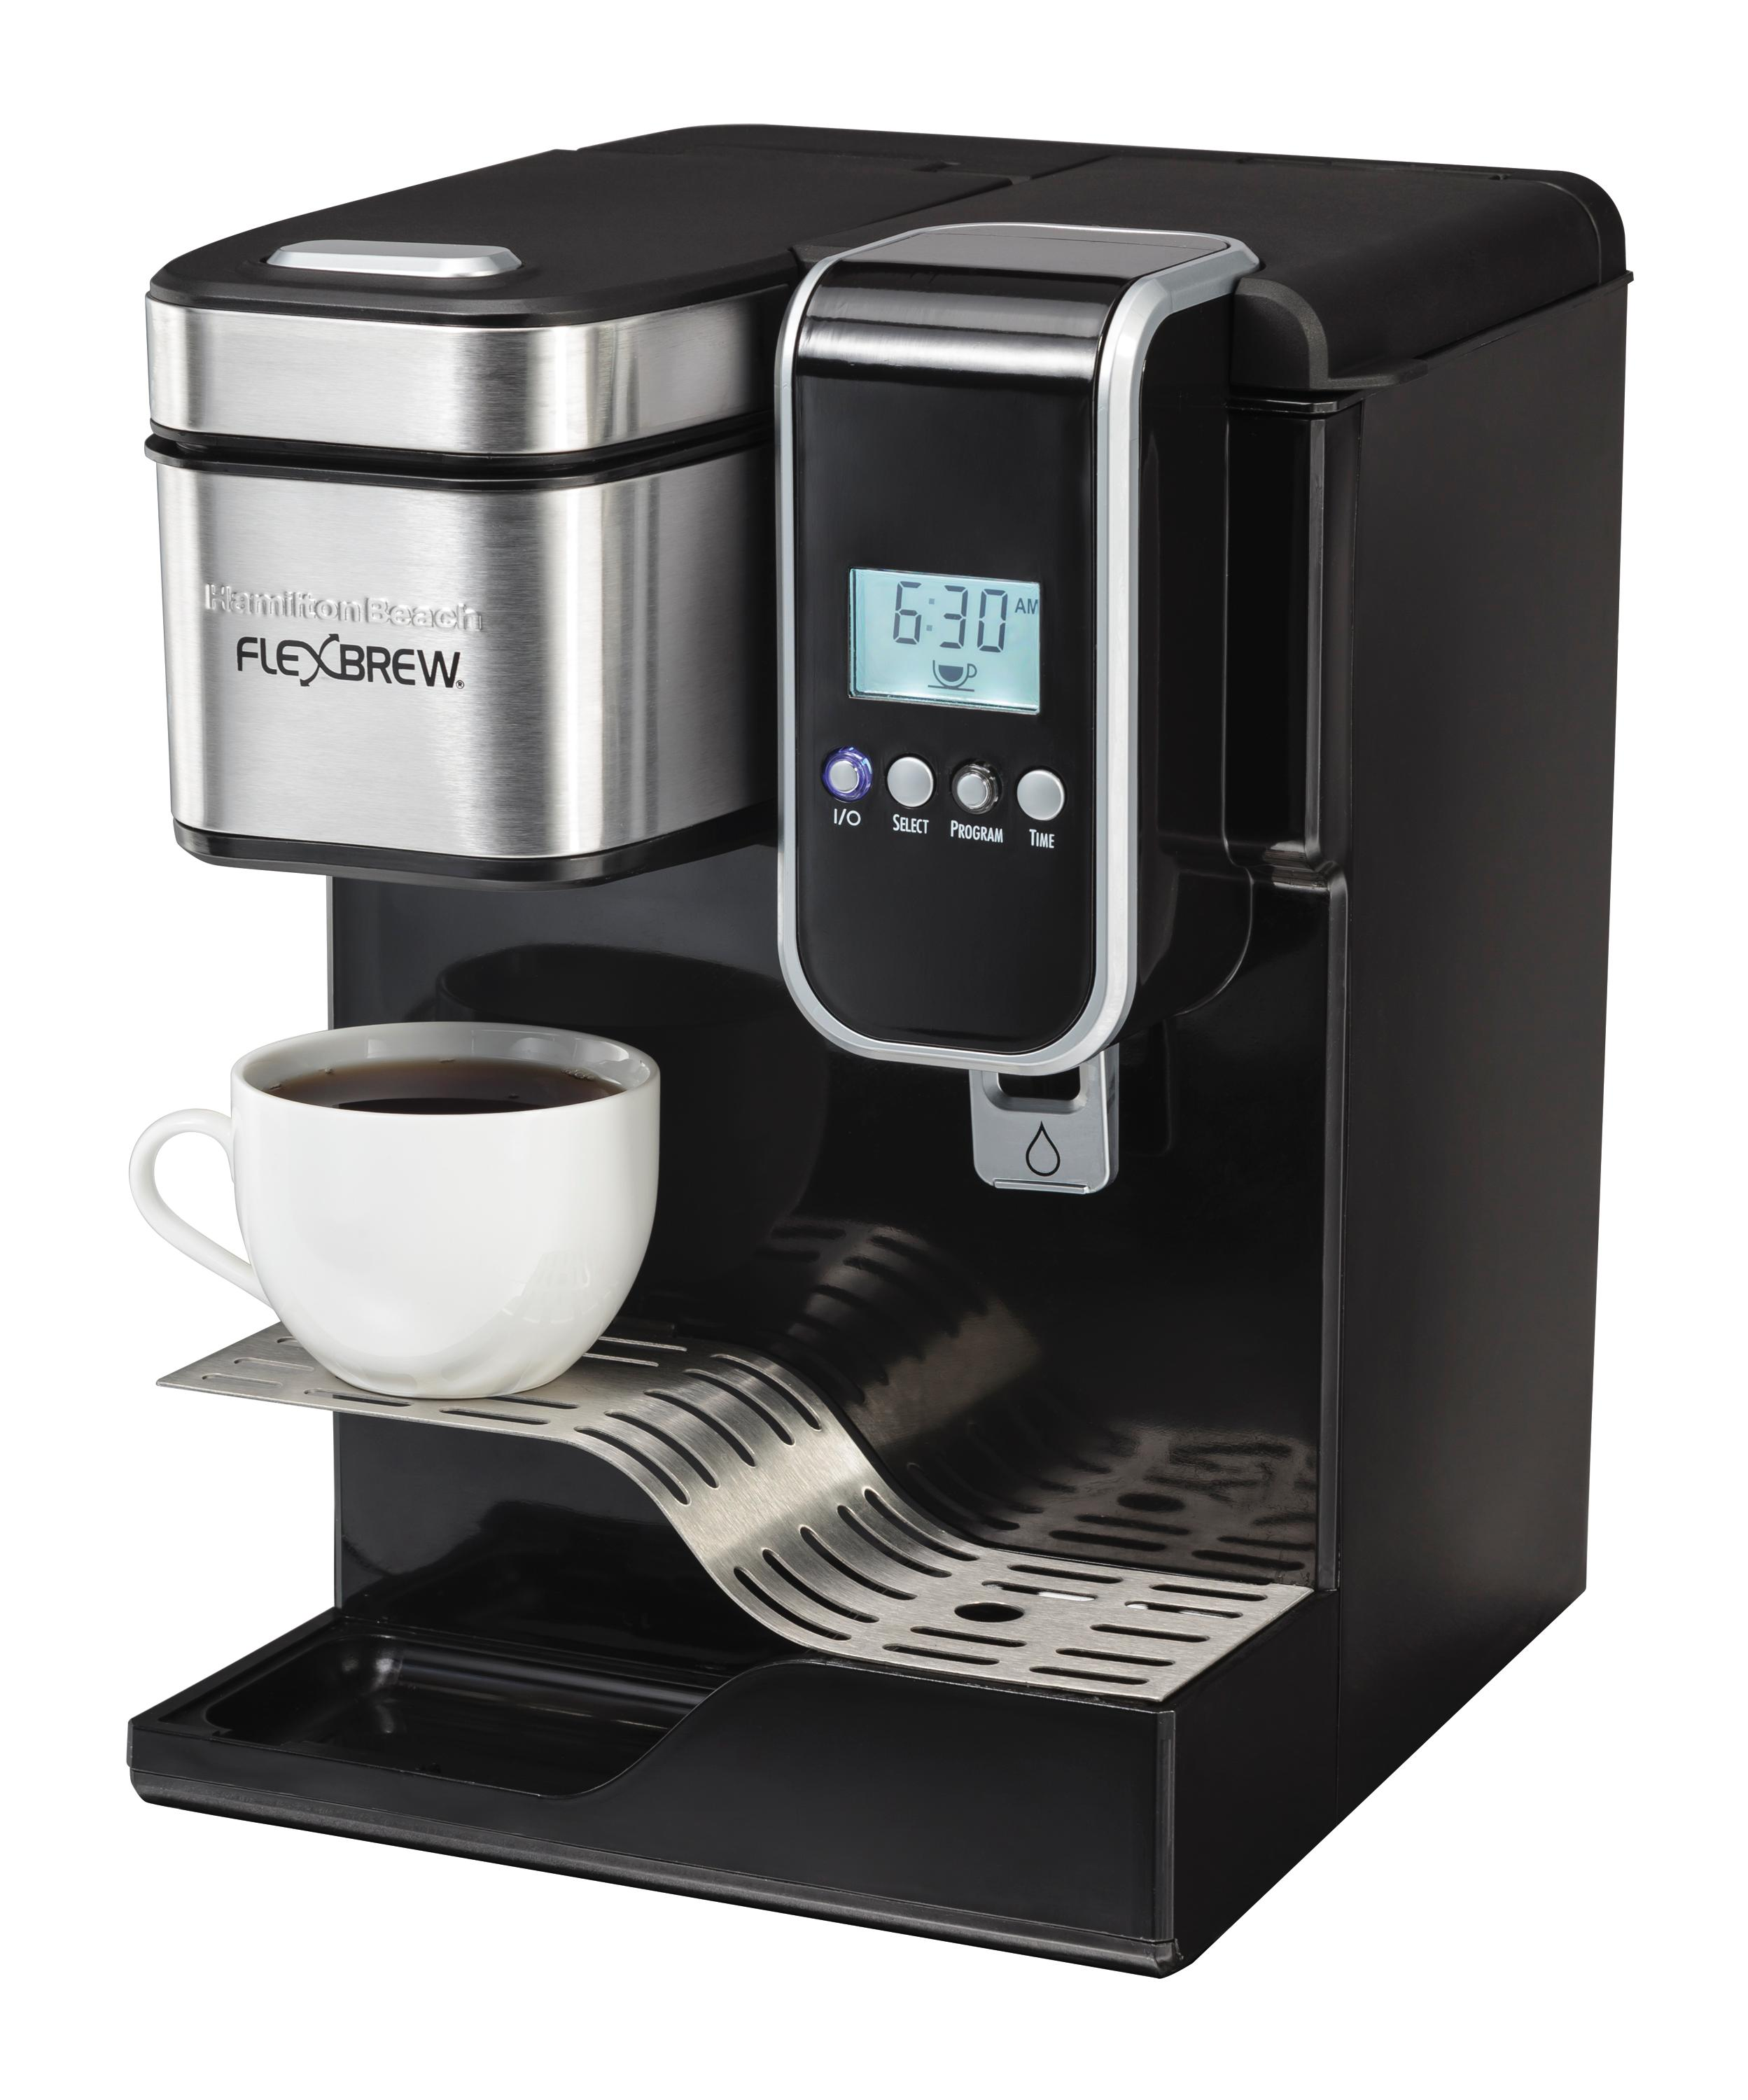 Best Hot And Cold Coffee Maker : coffee maker k cup cups kcups cuisinart keurig makers pot machine single mr bunn serve iced